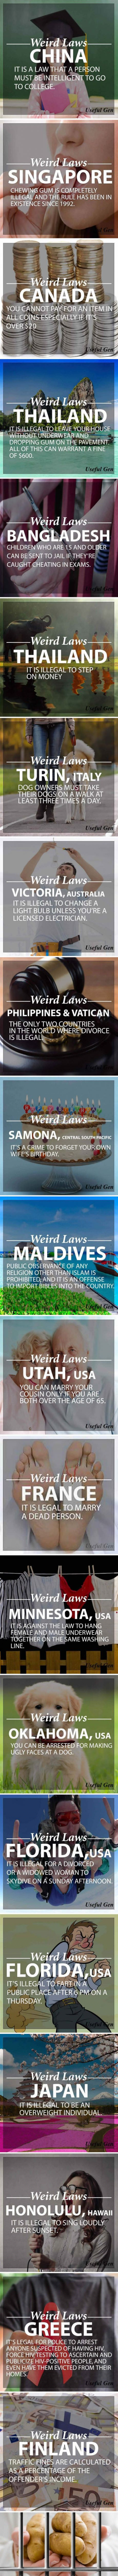 22 Weird laws around the world..